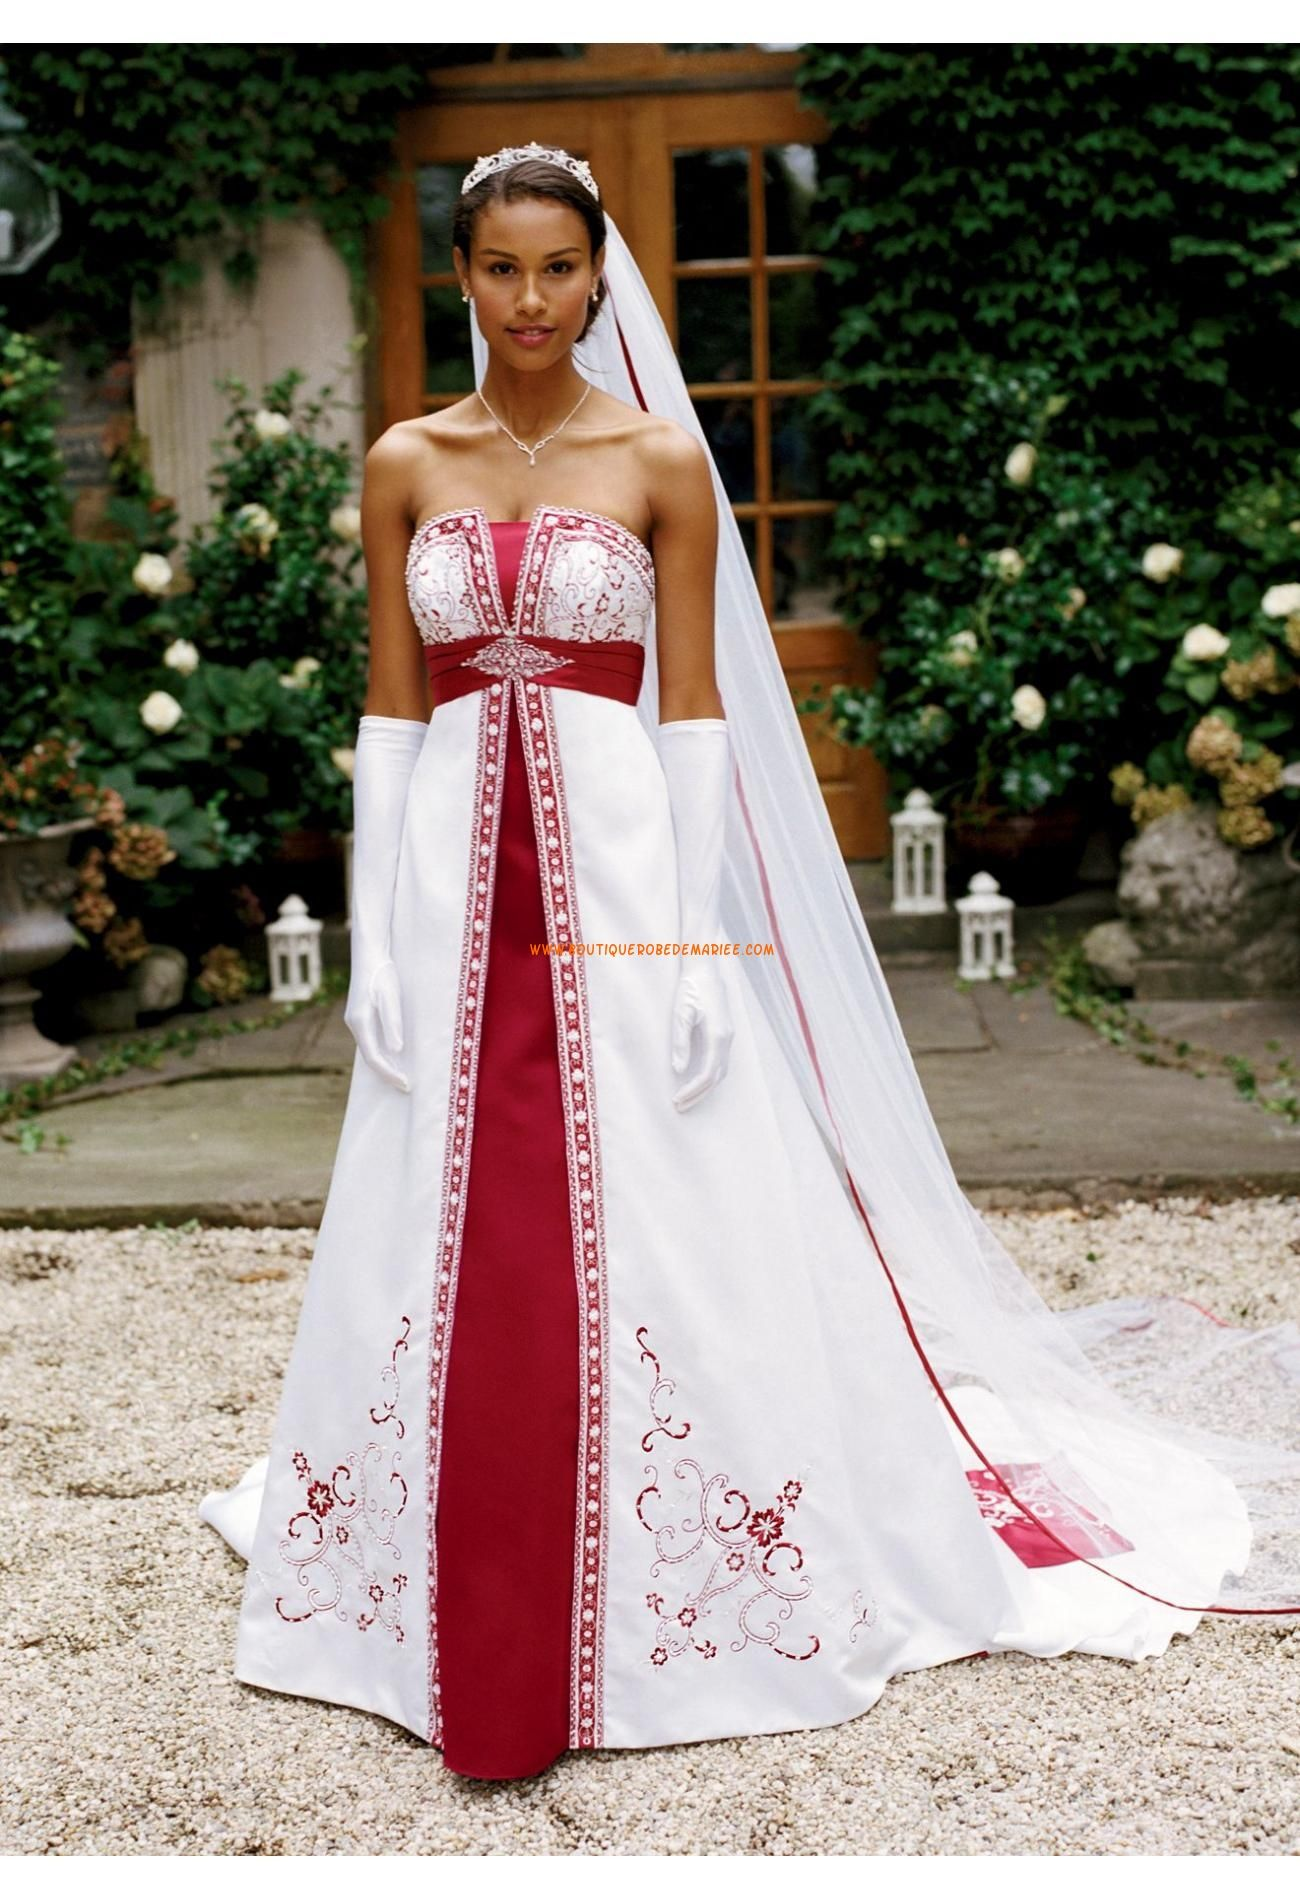 Robe mariee rouge blanche